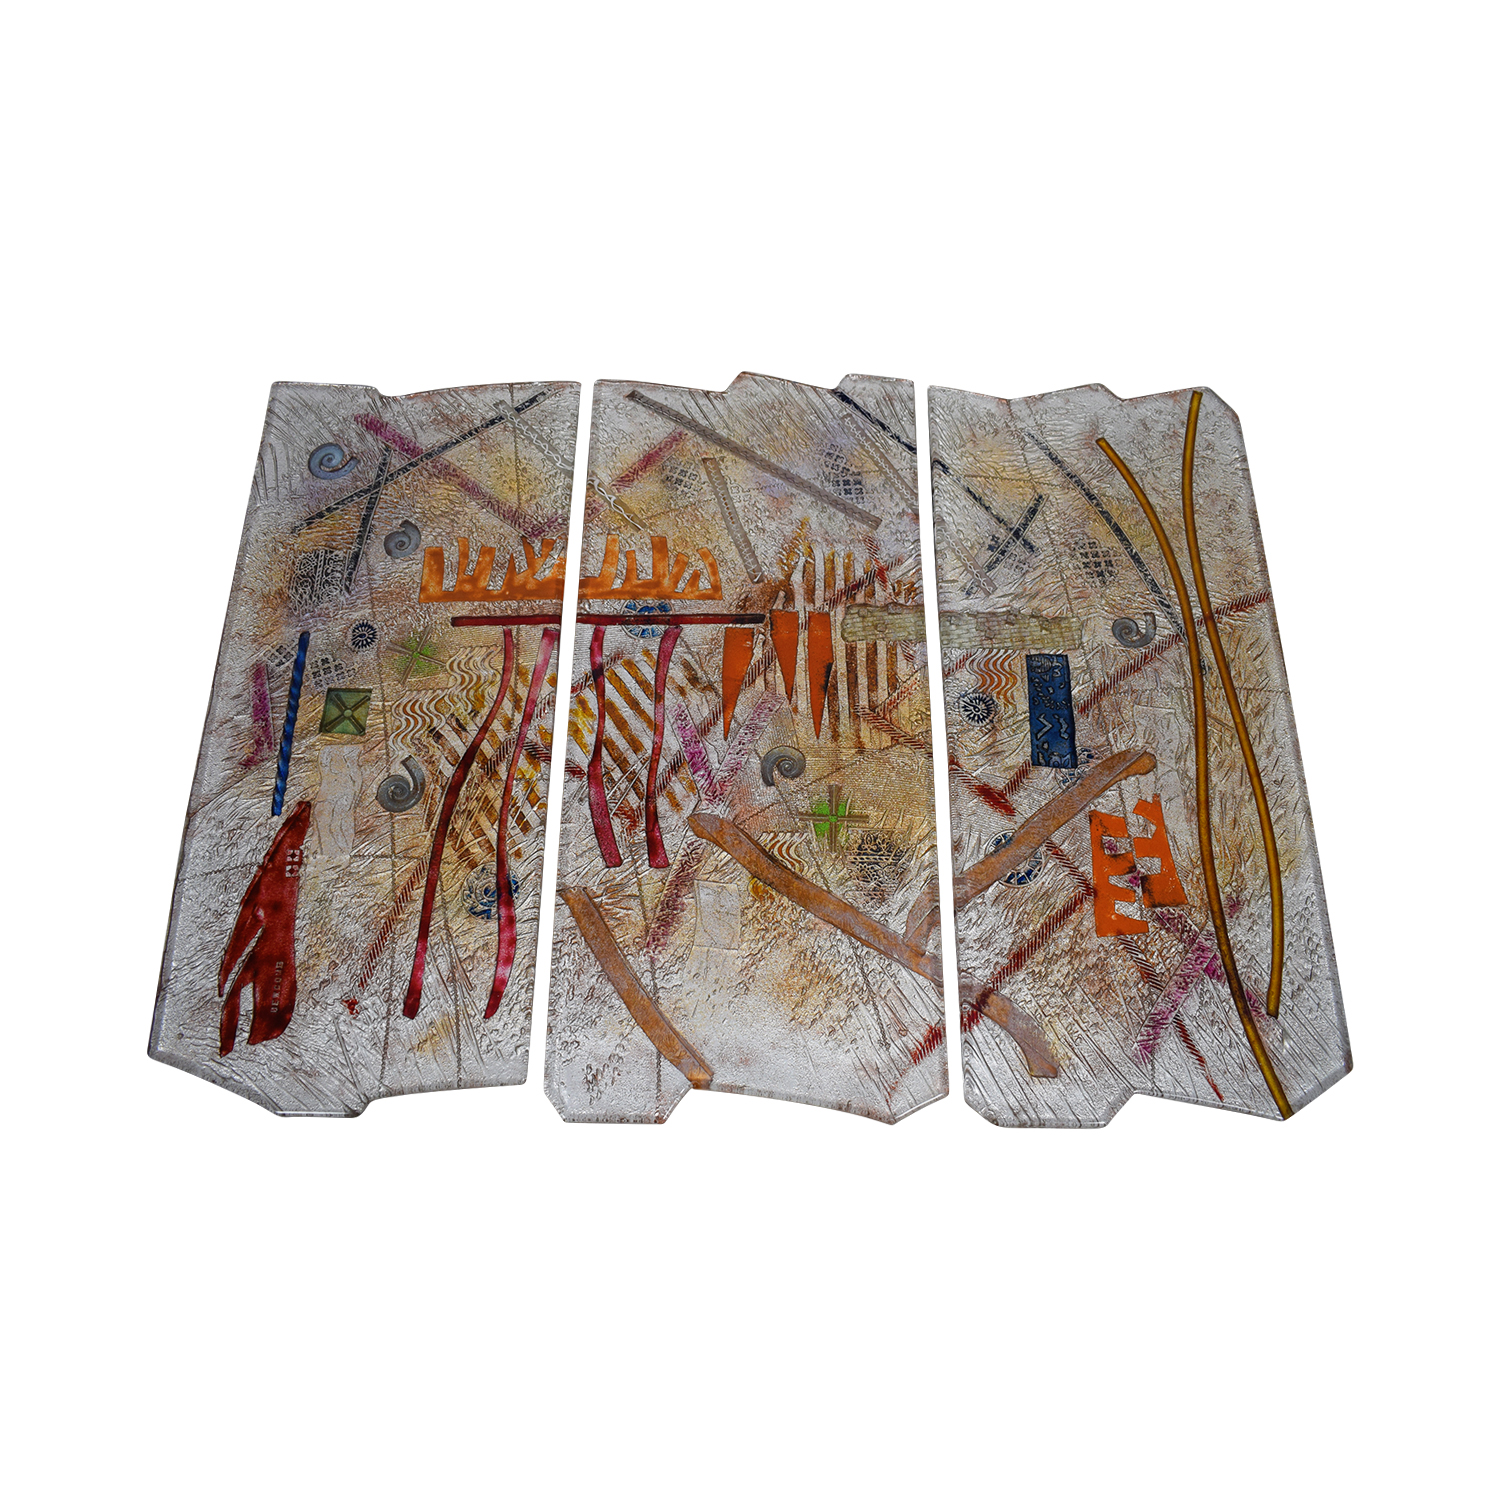 buy Gerry Newcomb Kiln Cast Triptych Glass Artwork with Gold Paint Gerry Newcomb Decor